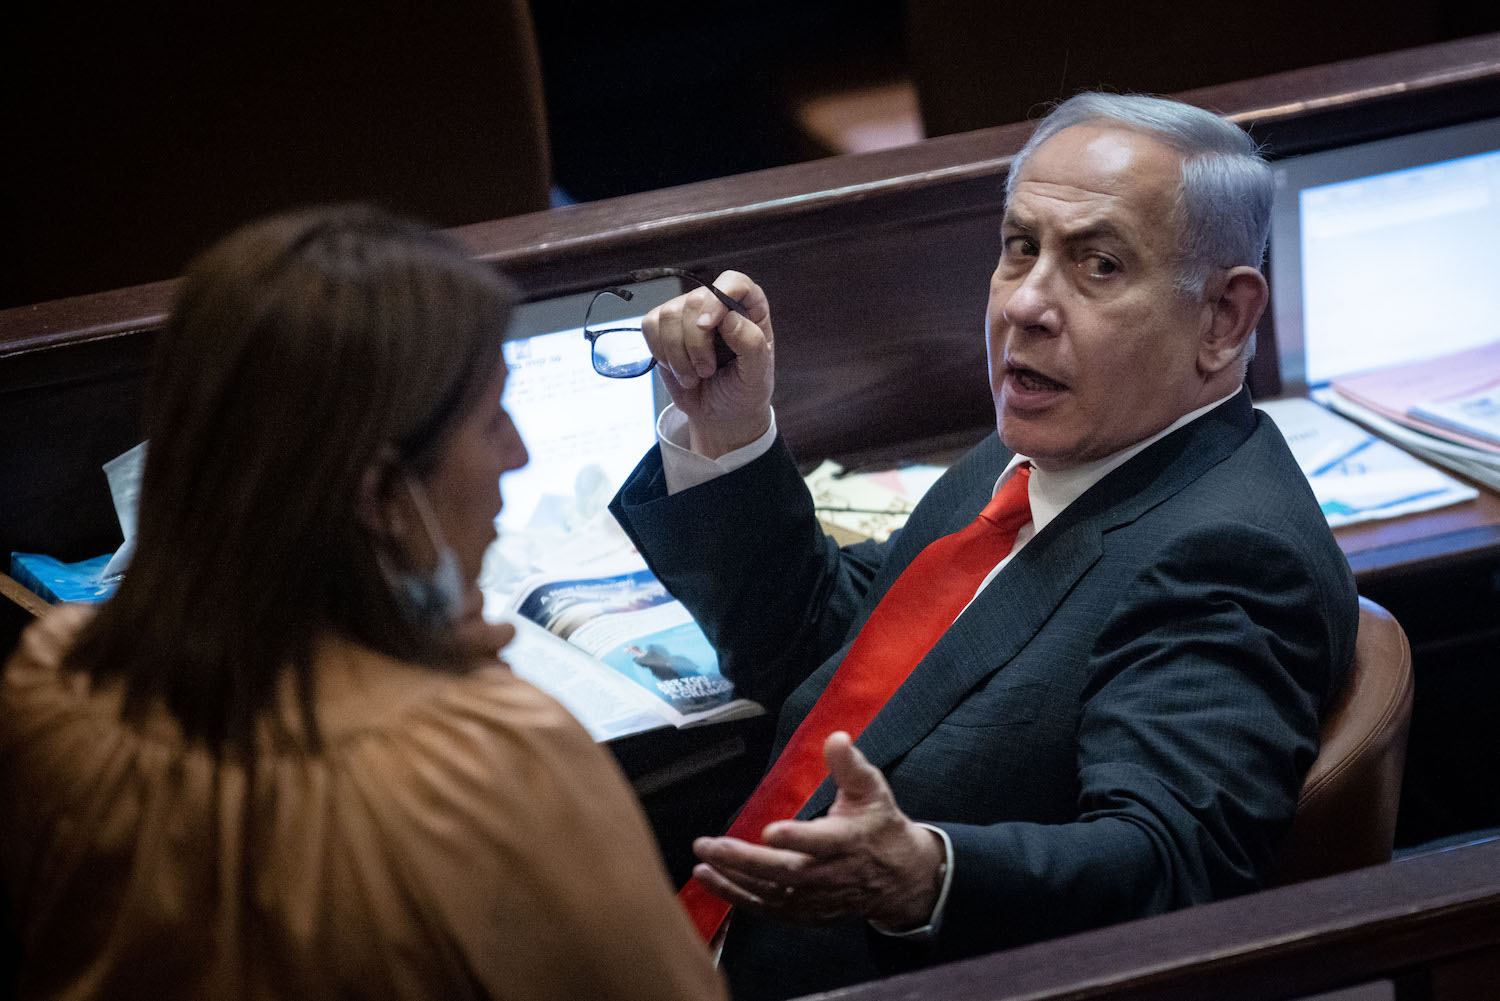 Opposition head Benjamin Netanyahu attends a discussion on the Citizenship Law, during a plenum session in the Knesset, Jerusalem, July 6, 2021. (Yonatan Sindel/Flash90)